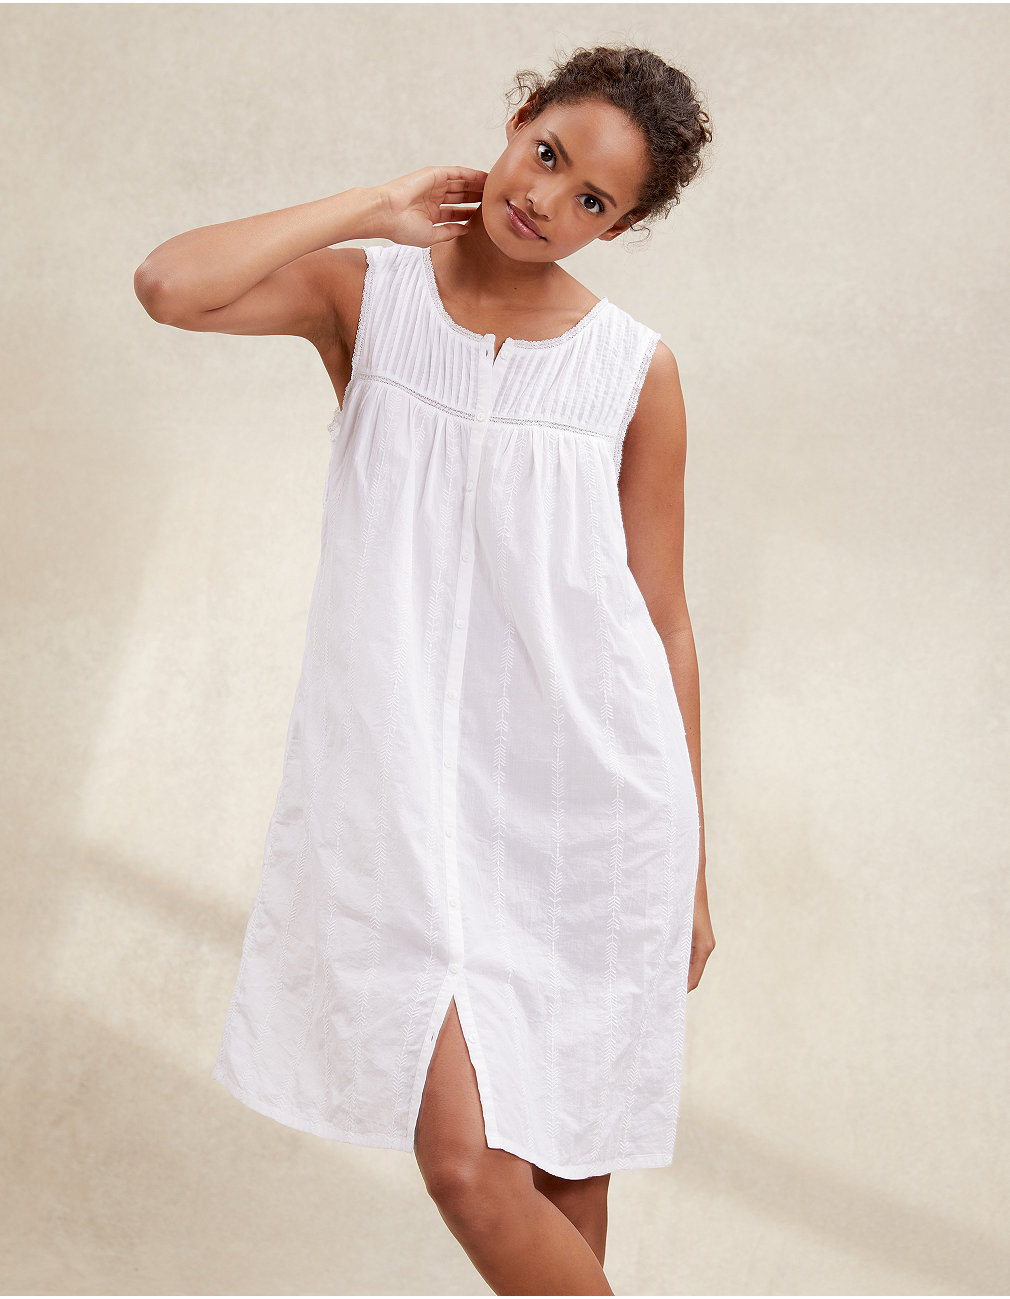 37c2809f13 Cotton Pintuck Embroidered Nightie | Nightdresses | The White Company UK